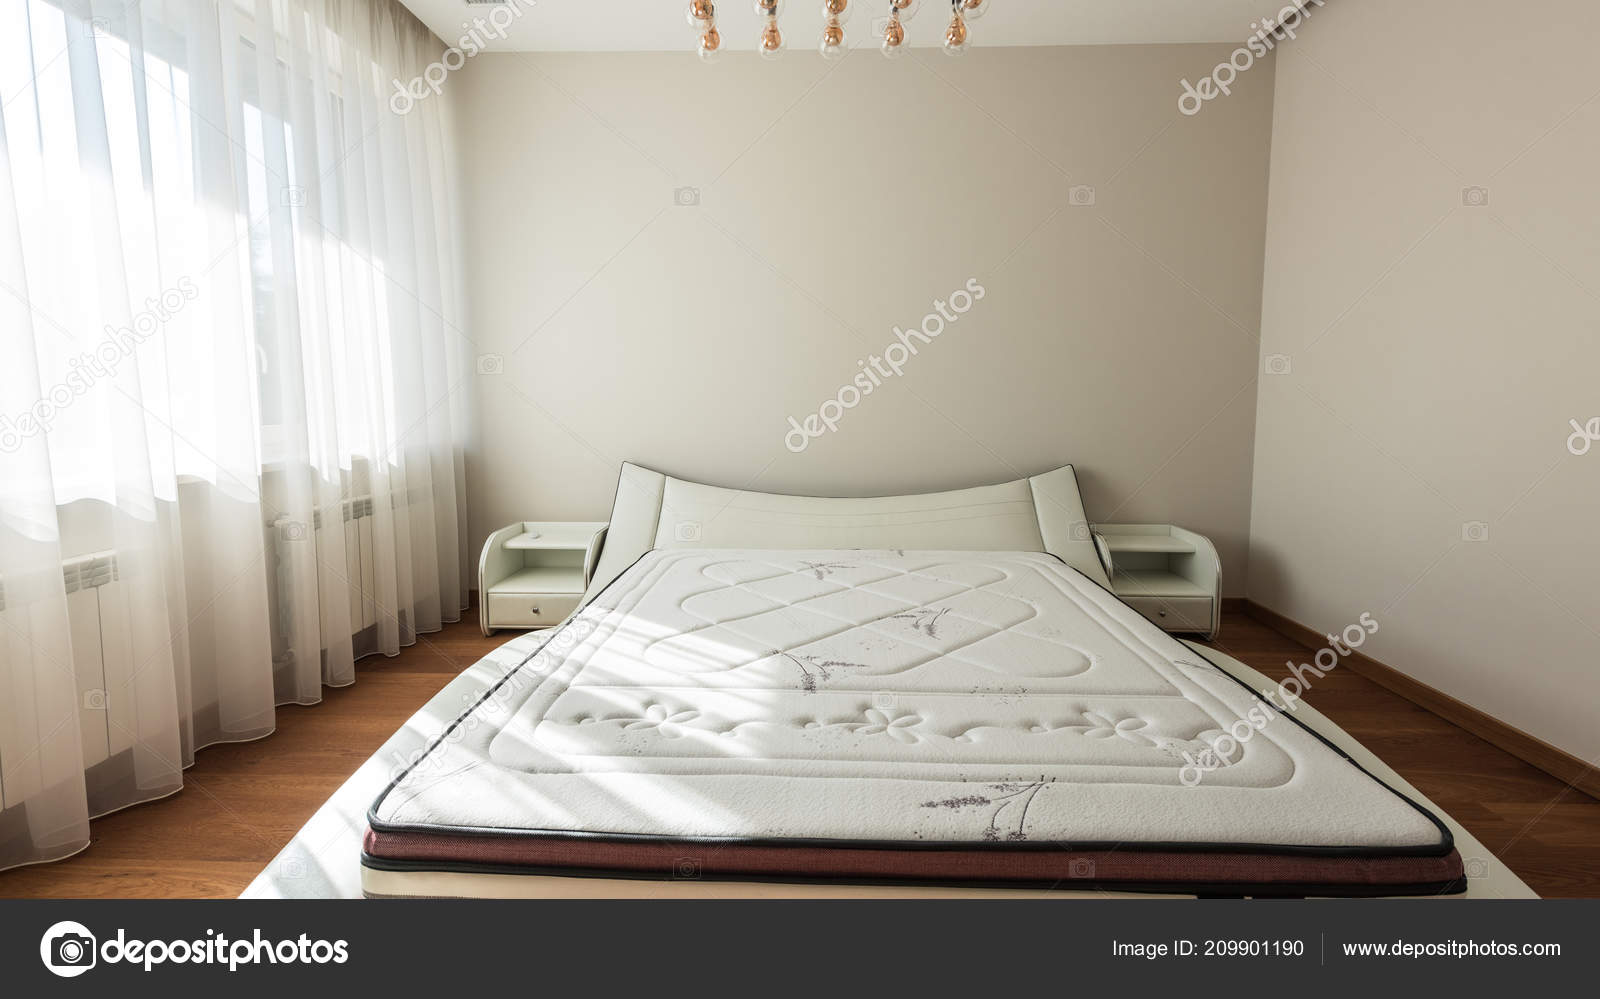 Interior modern bedroom bed big window u stockfoto y boychenko